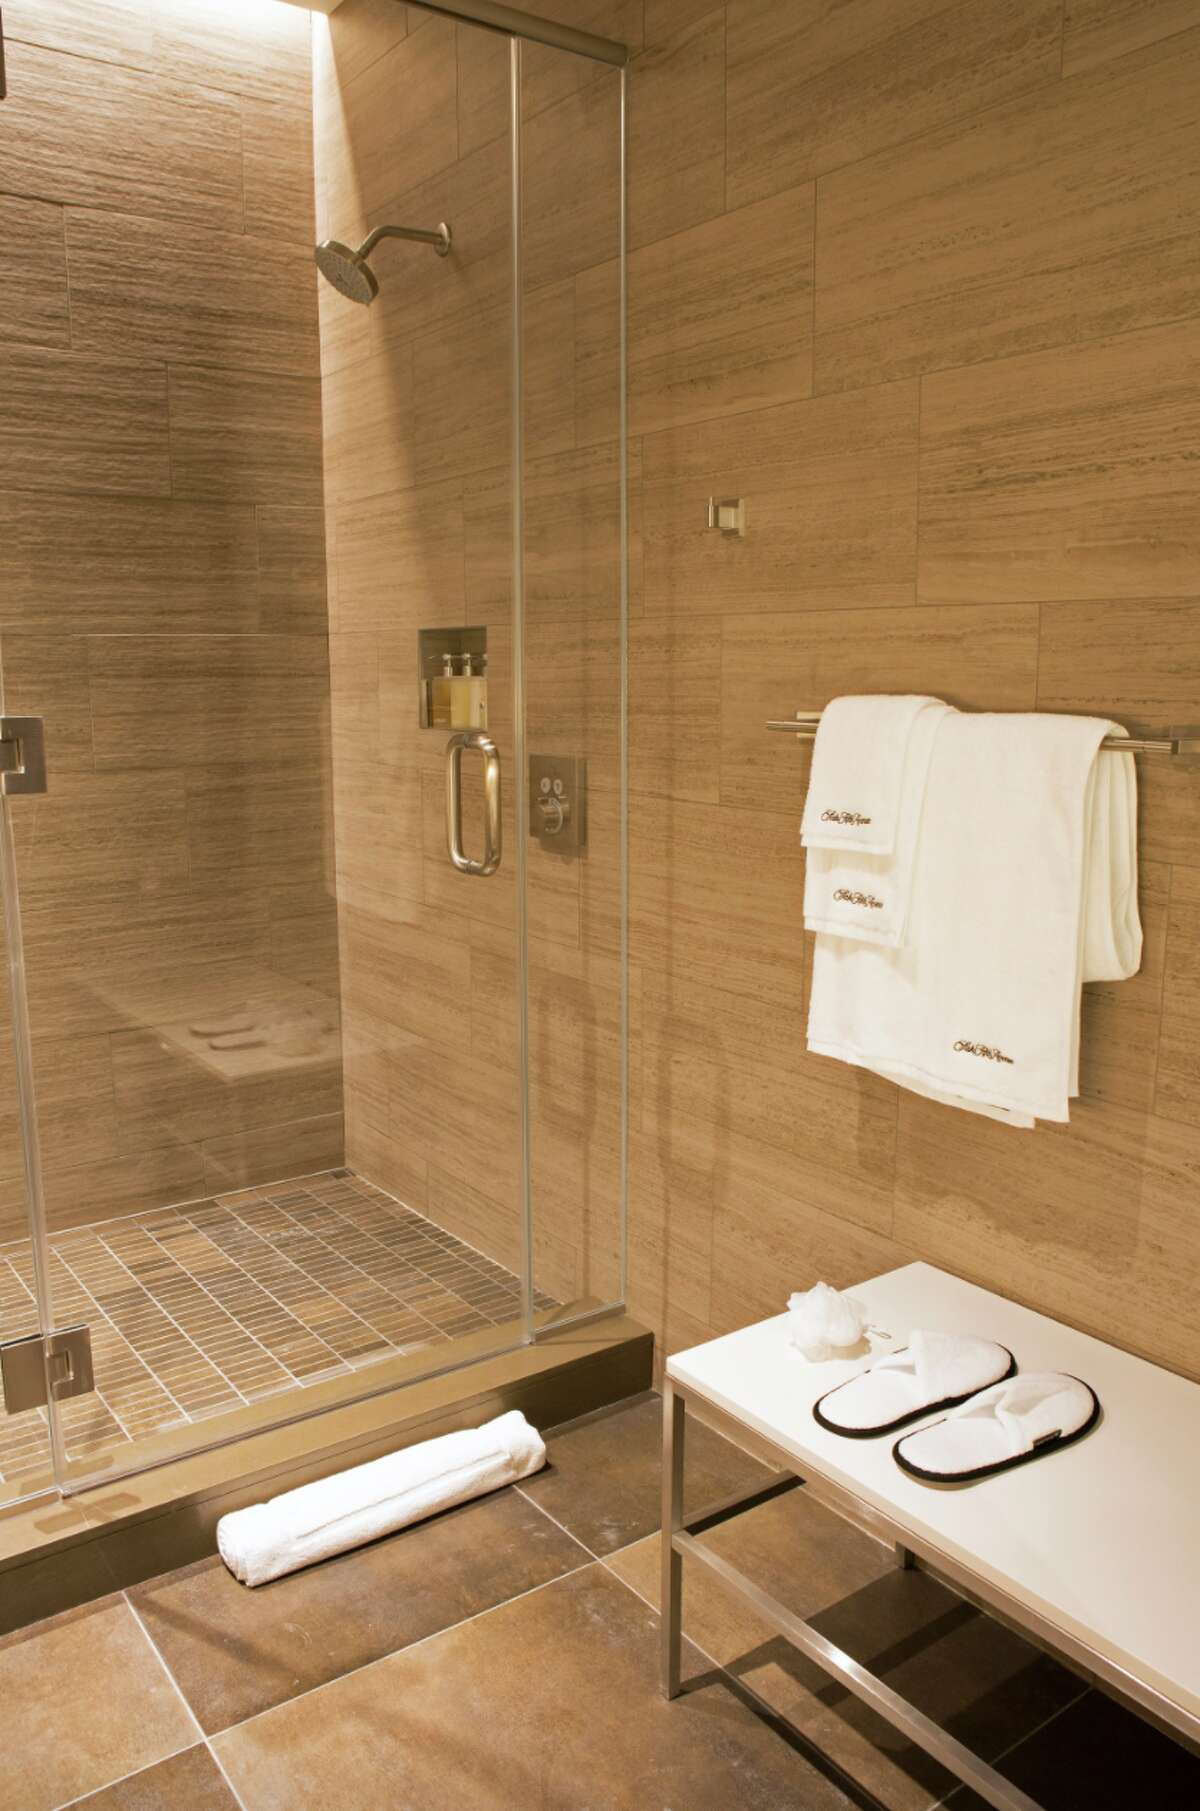 Shower suite at United's Polaris Lounge at Chicago O'Hare